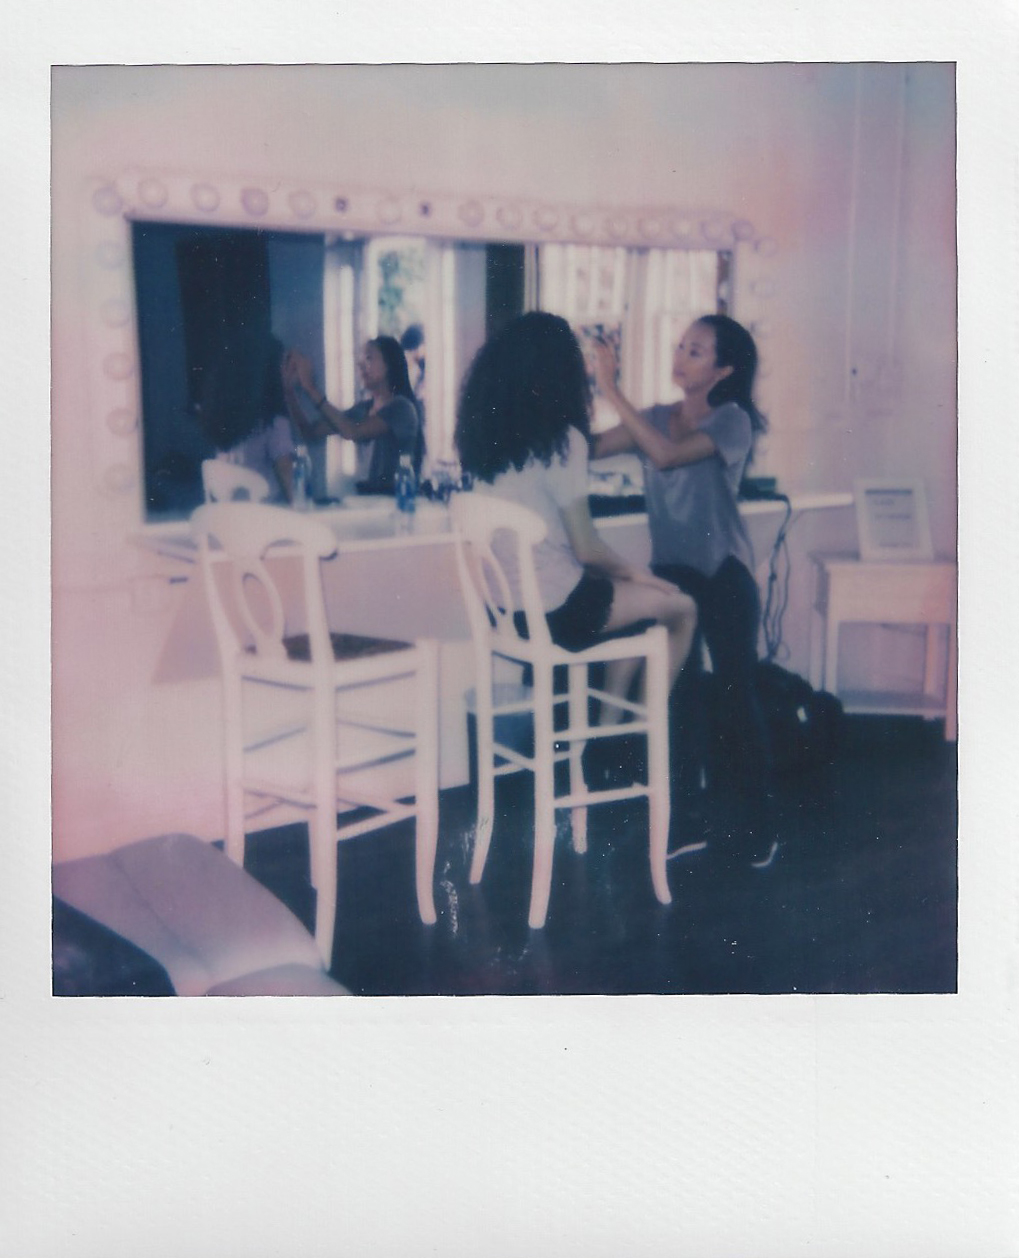 NYC_Fashion_Photographer_Polaroid_Behind_The_Scenes_Photoshoot_Impossible_Film_Camera_Women_Models_Ford_Agency Gerard_Jude_Andam_Little_River_Studios